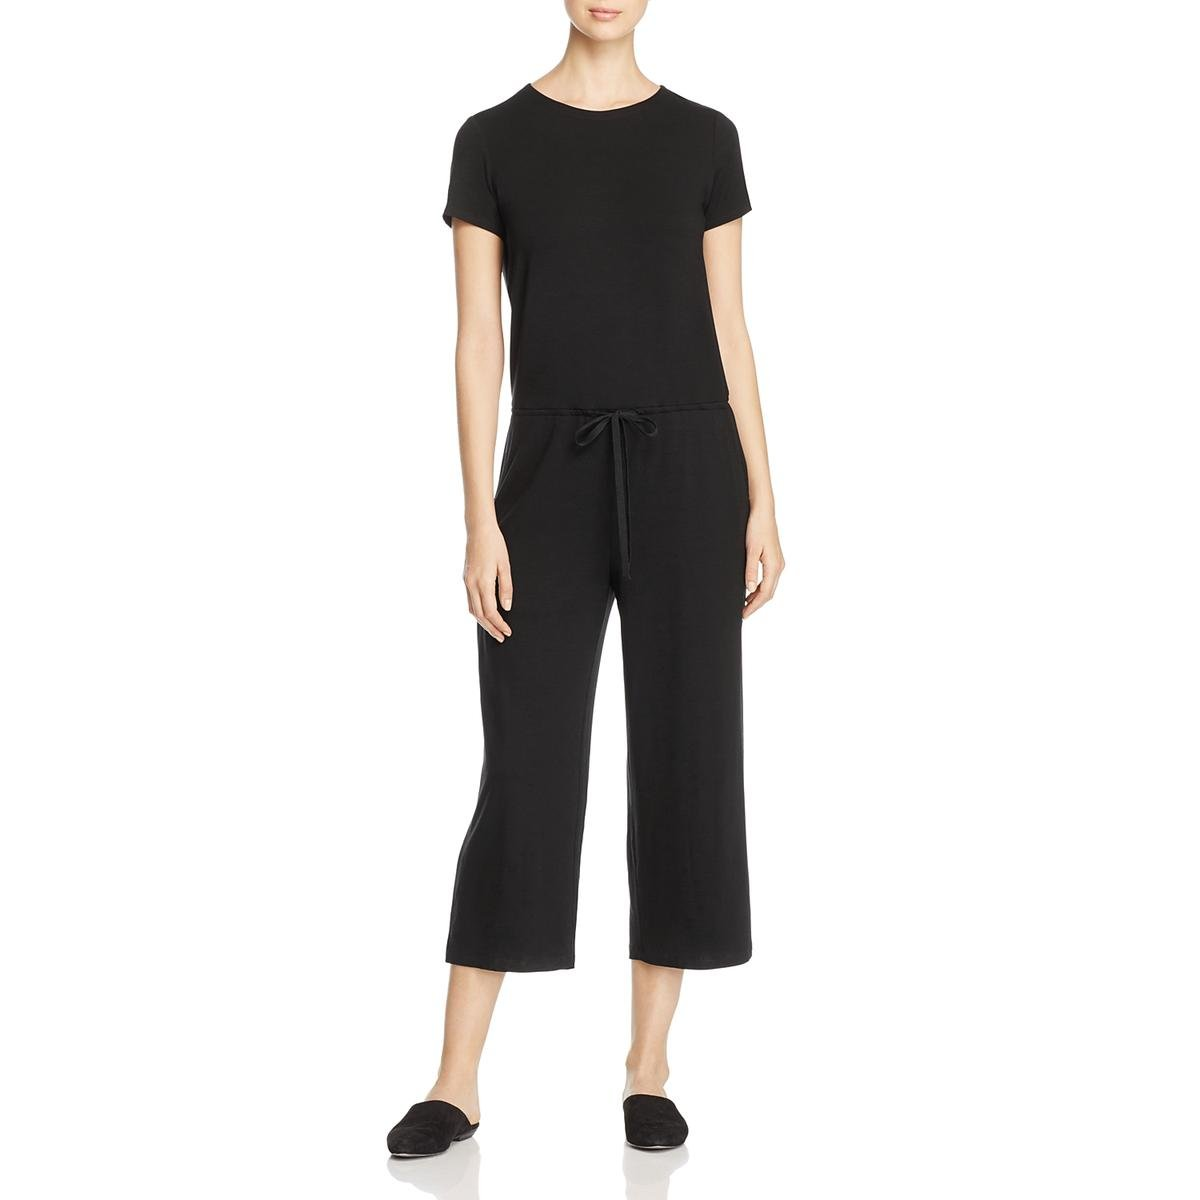 Eileen Fisher Womens Petites Xclusive Cropped Wide Leg Jumpsuit Black PM